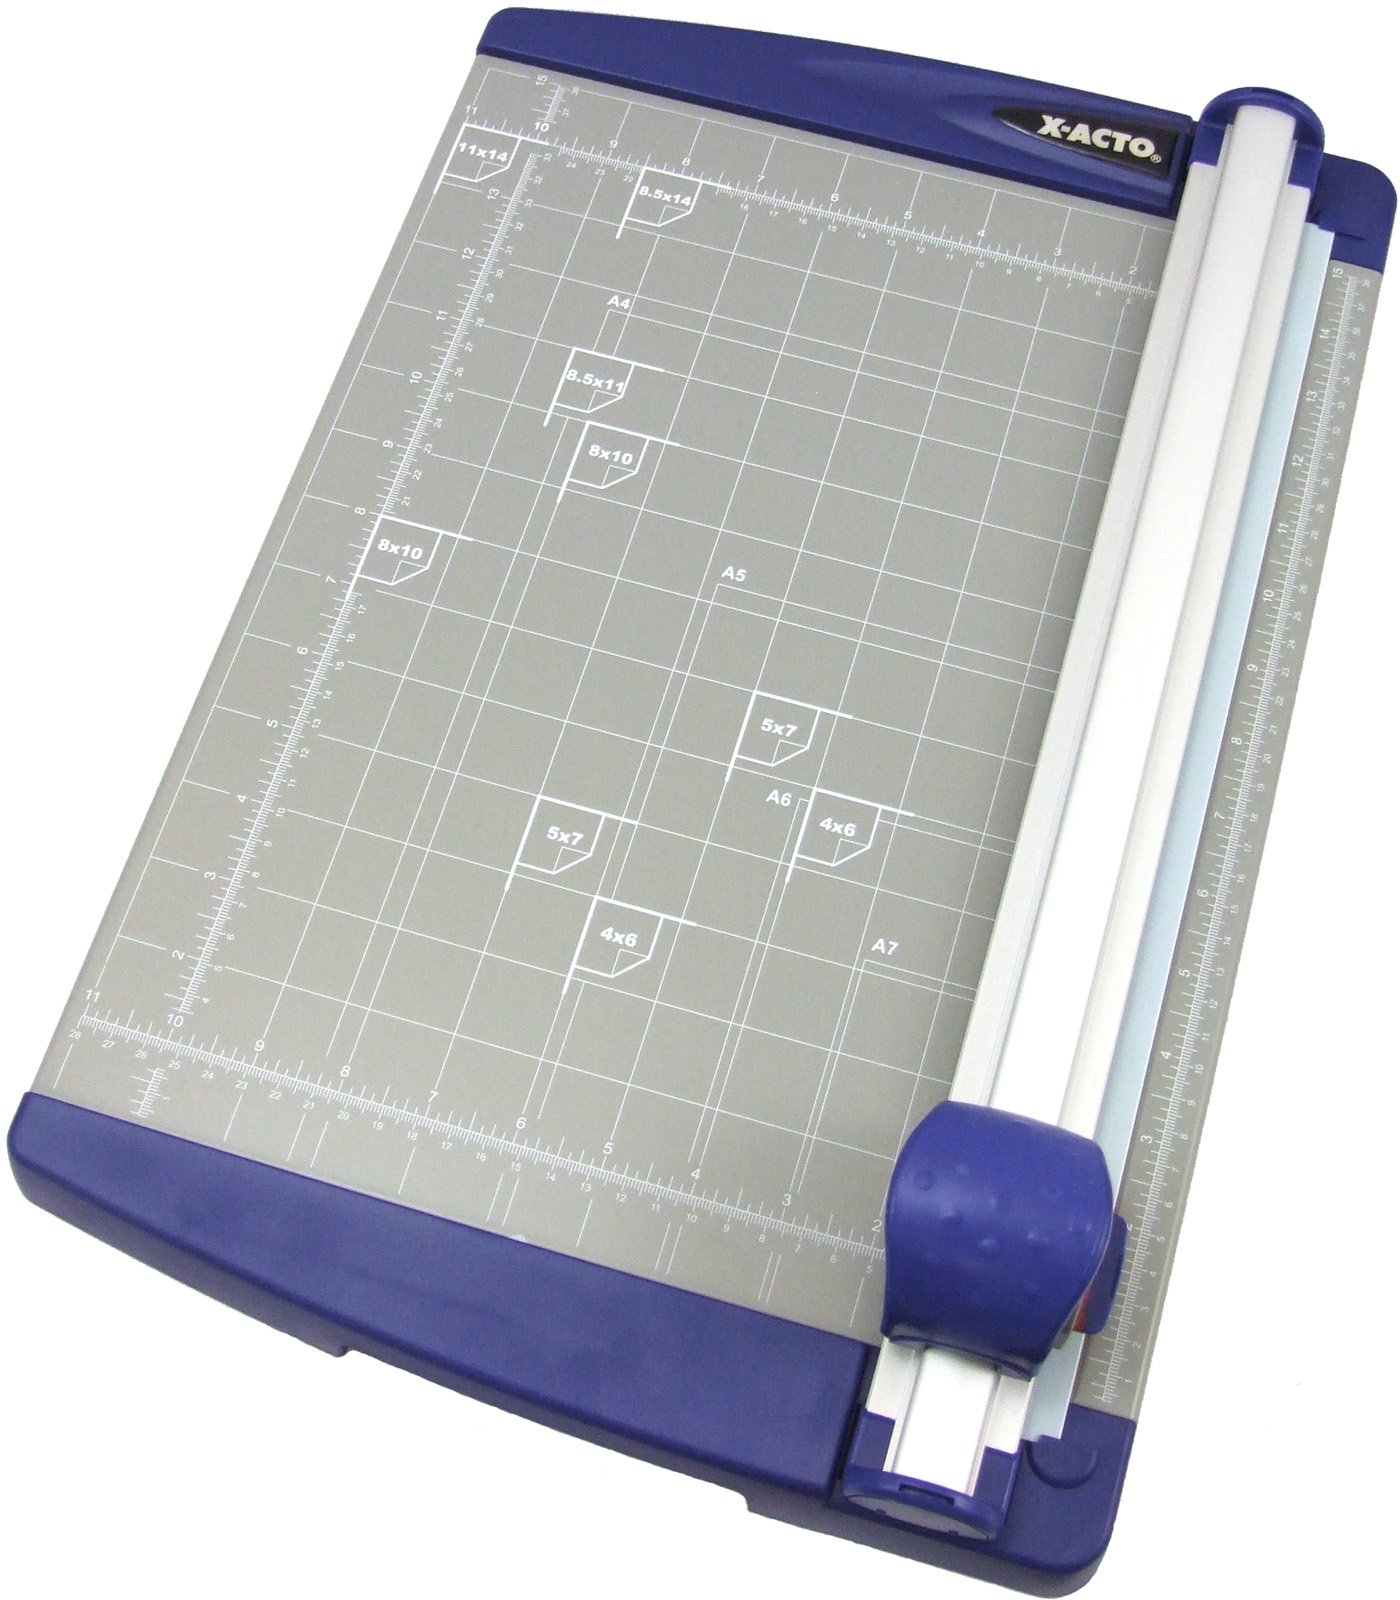 X-ACTO Rotary Paper Trimmer, for Medium Weight Cutting, 26455